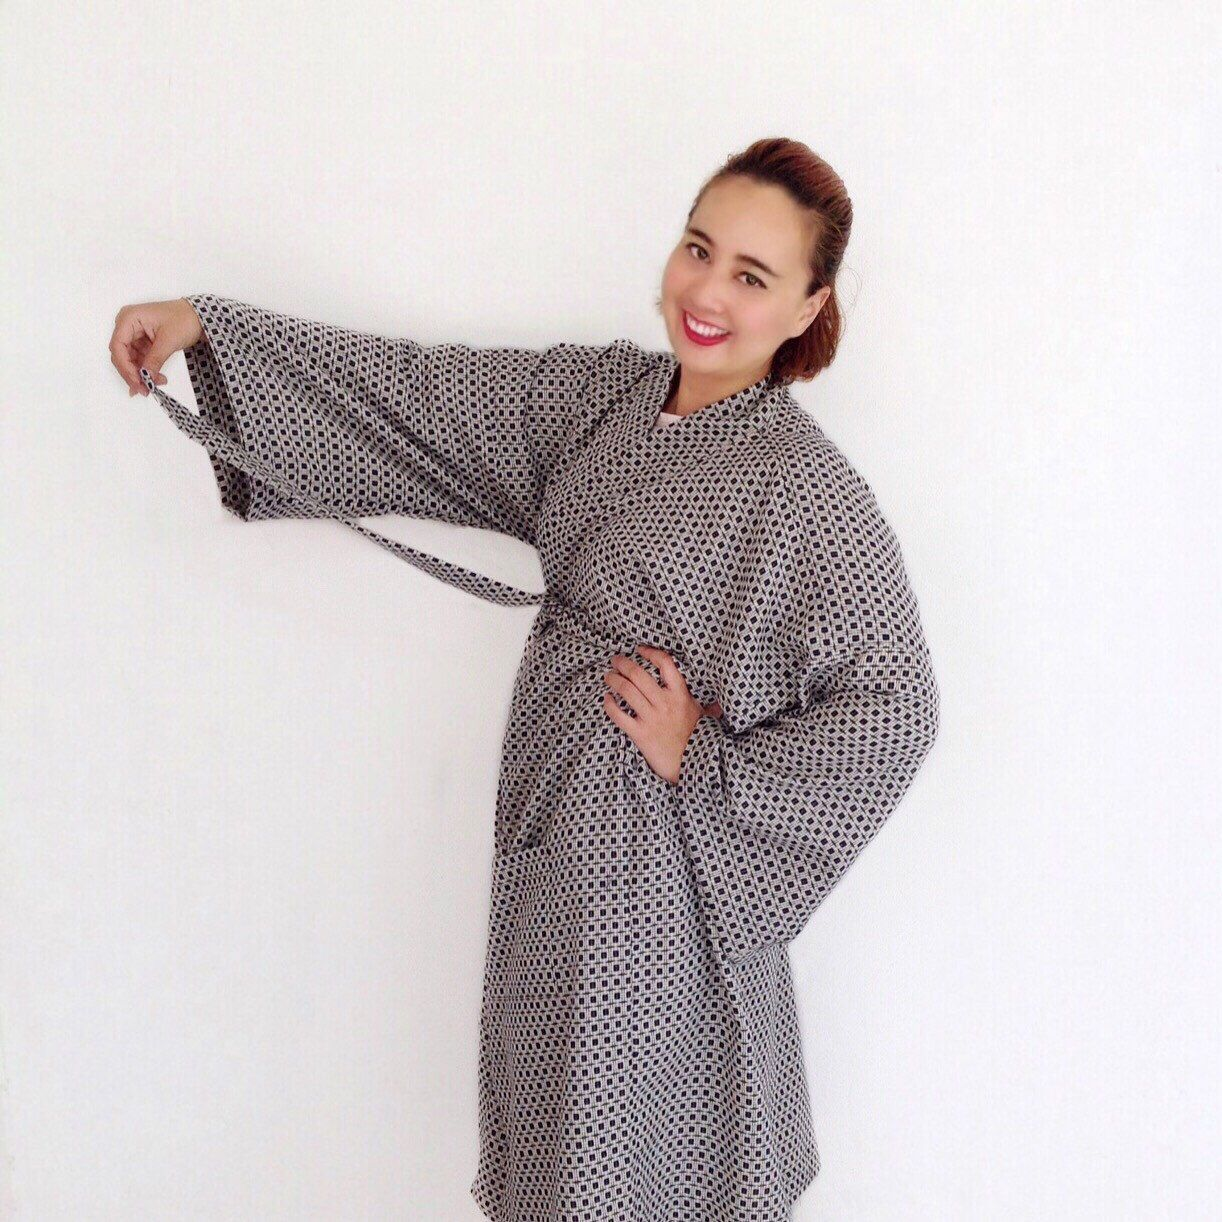 0bbc1f754e Organic 100 percent natural cotton handmade kimono style bathrobes ...